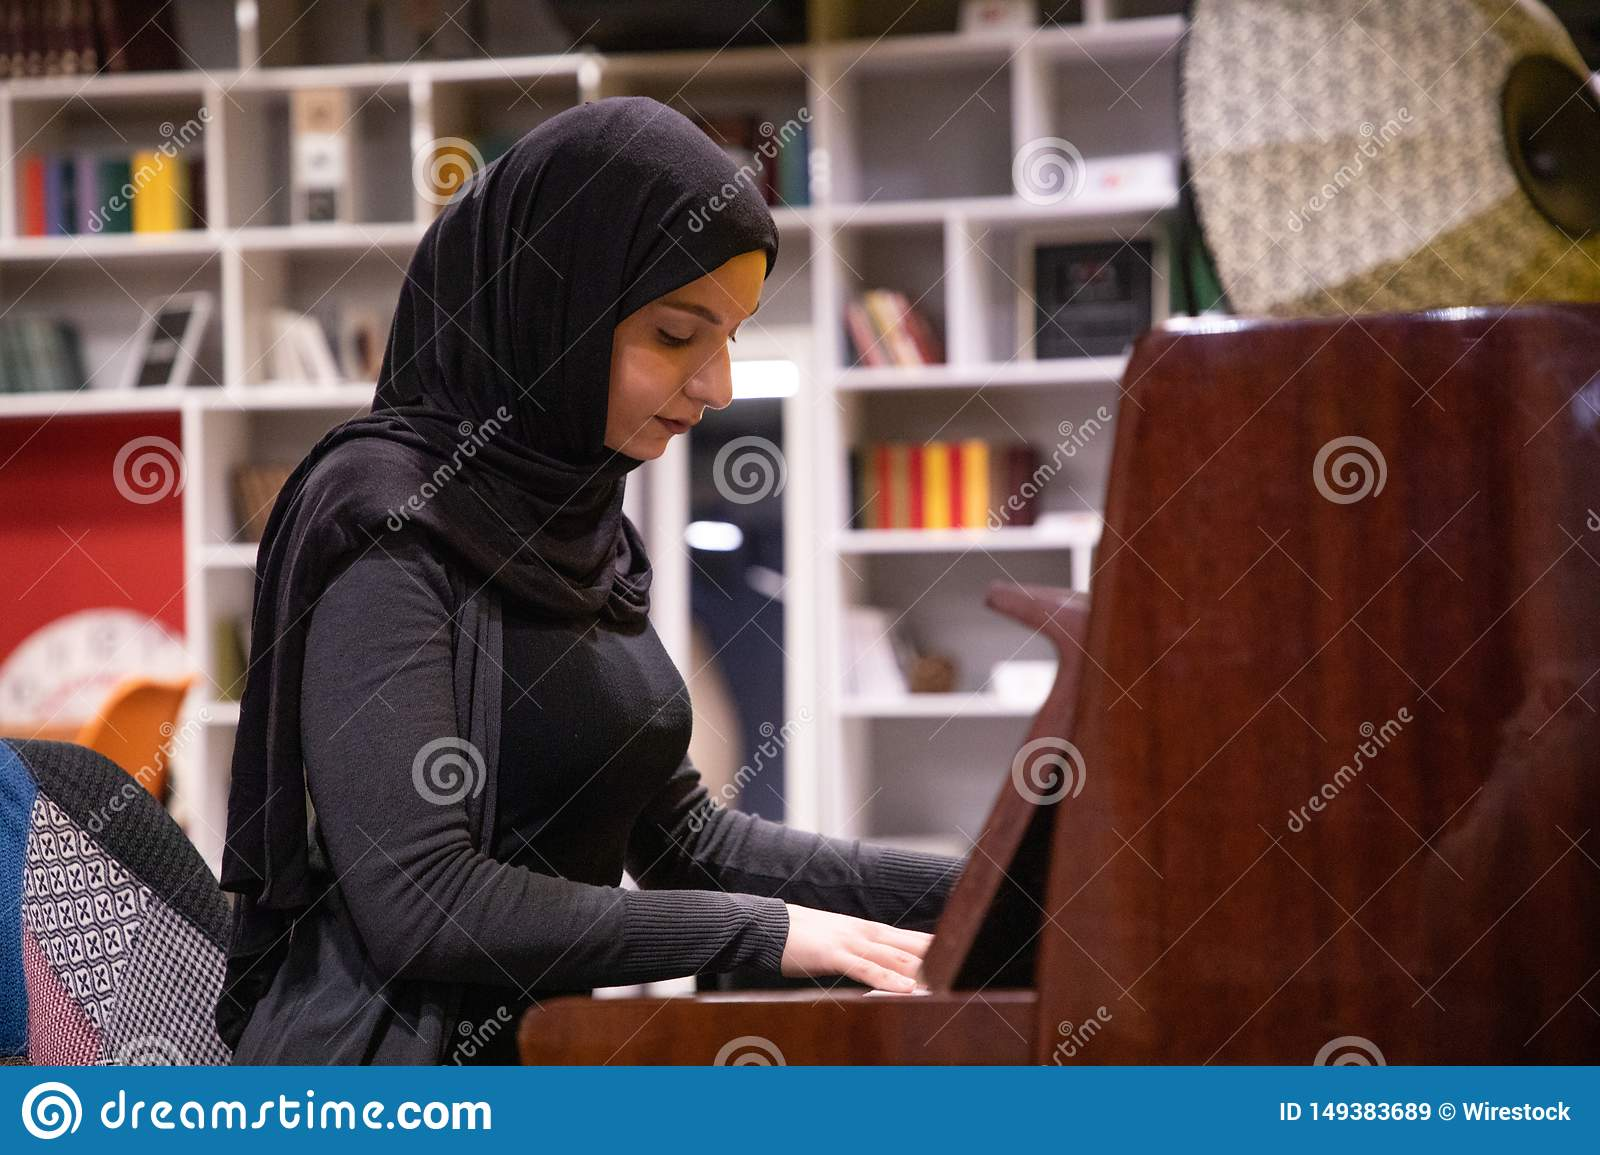 Attractive Muslim female in a hijab playing piano